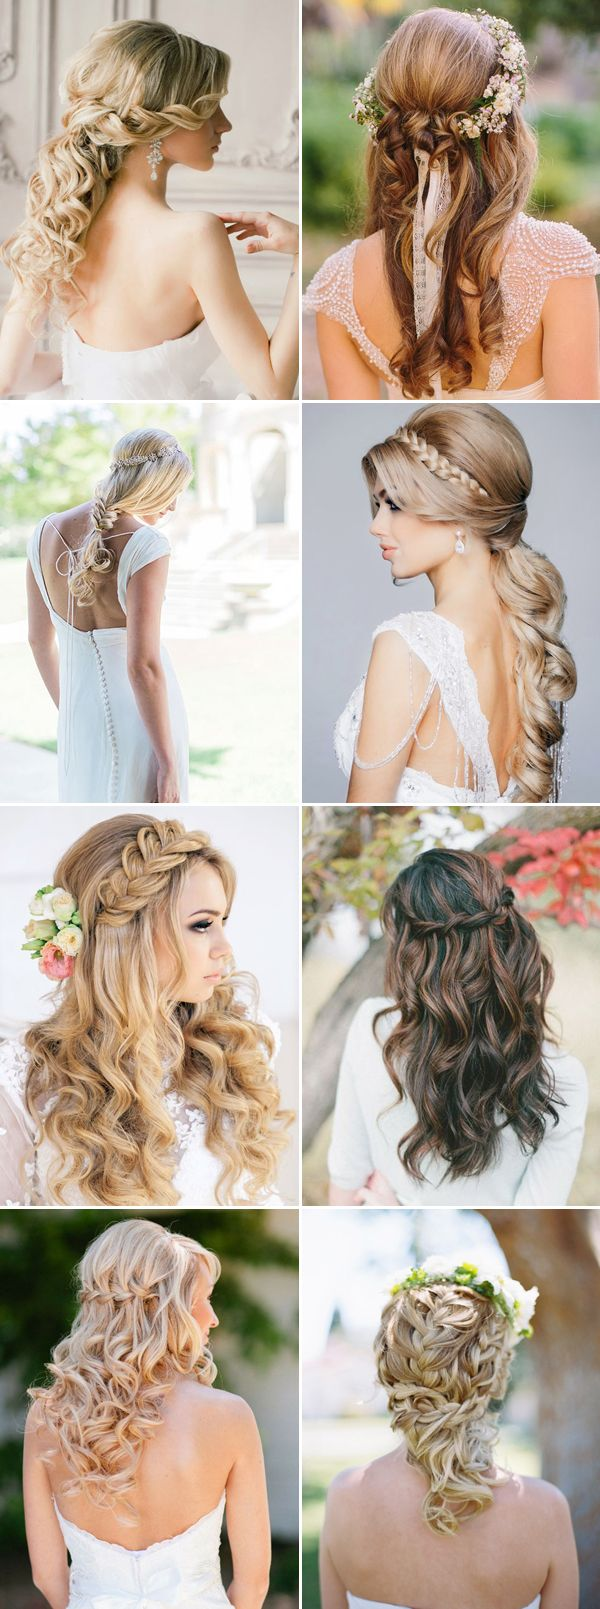 Gorgeous Half Up, Half Down Hairstyles for Brides - Partially Braided See More Hair Extensions on www.tophairclub.com